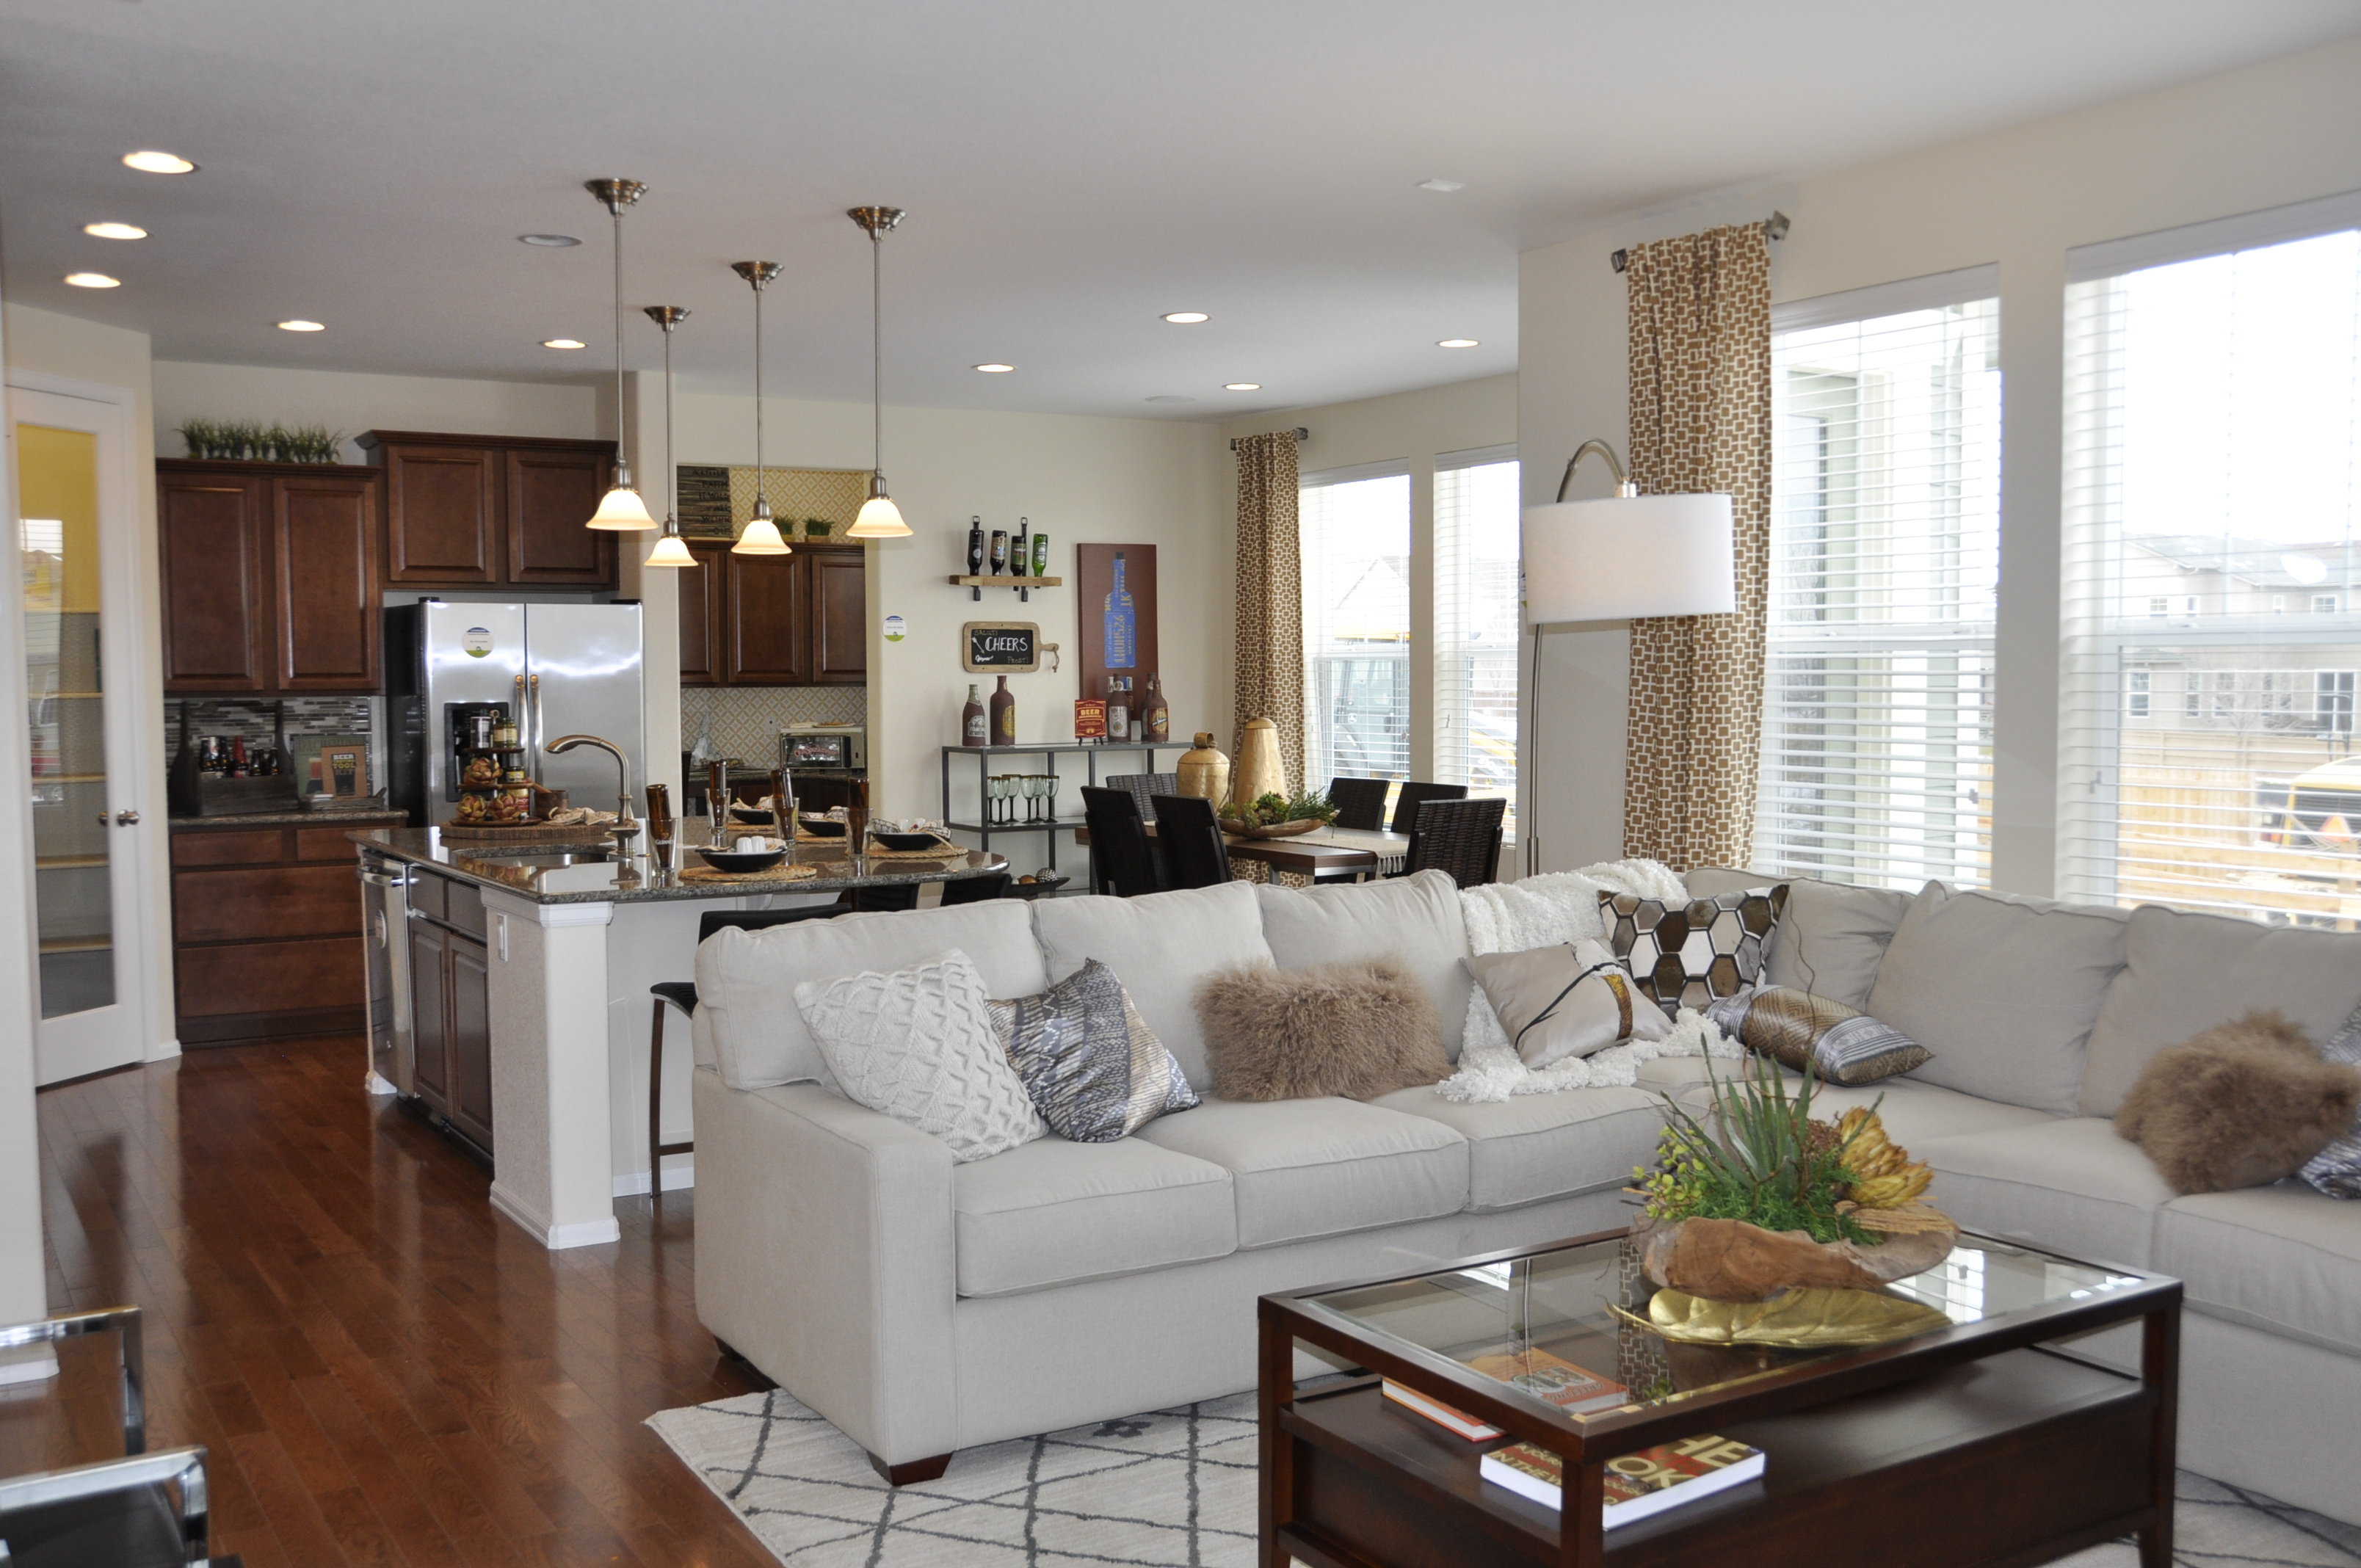 Model home furniture for sale mn